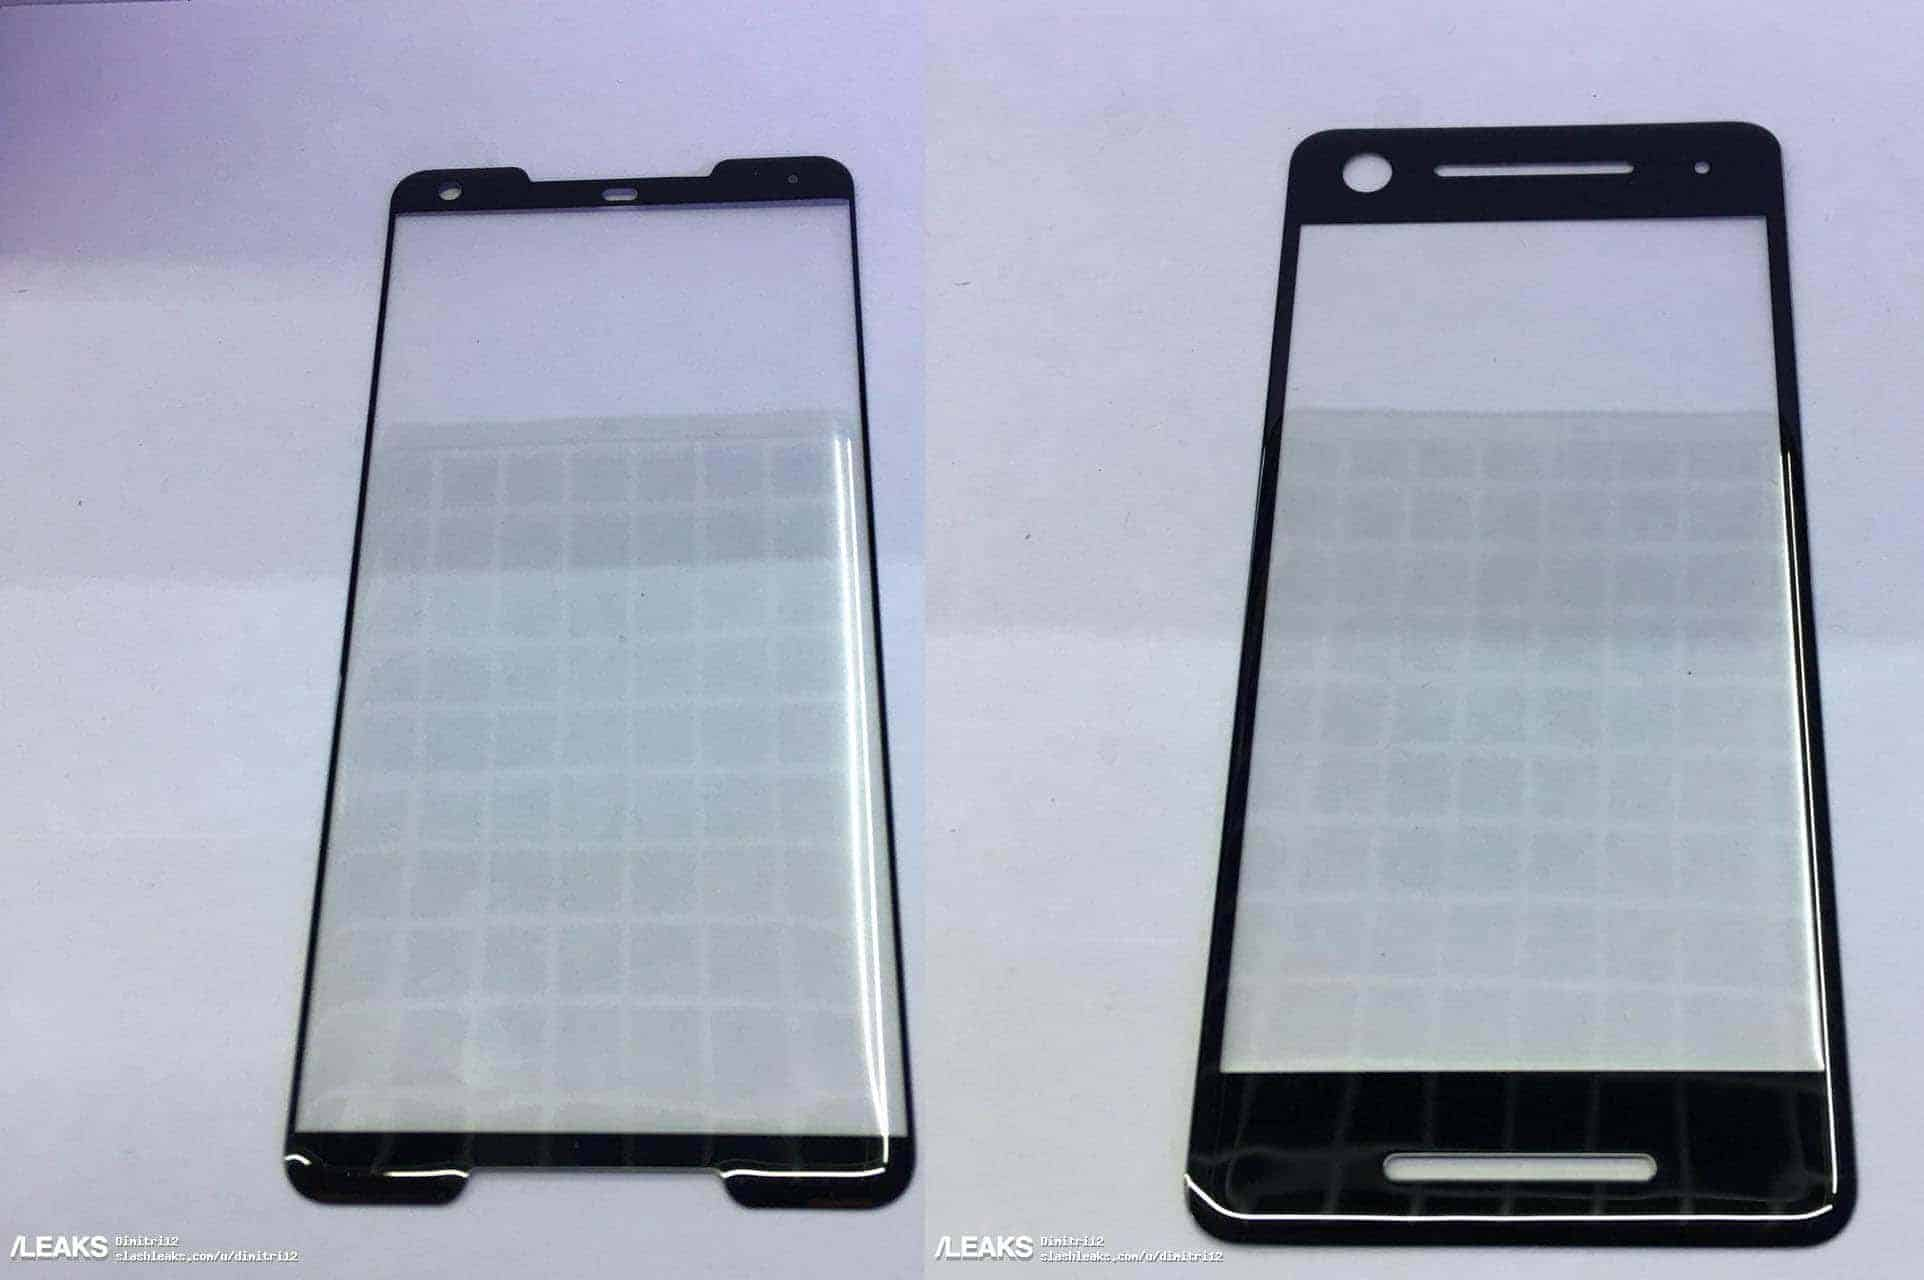 Pixel 2 and Pixel XL 2 Screen Protector SlashLeaks Joined